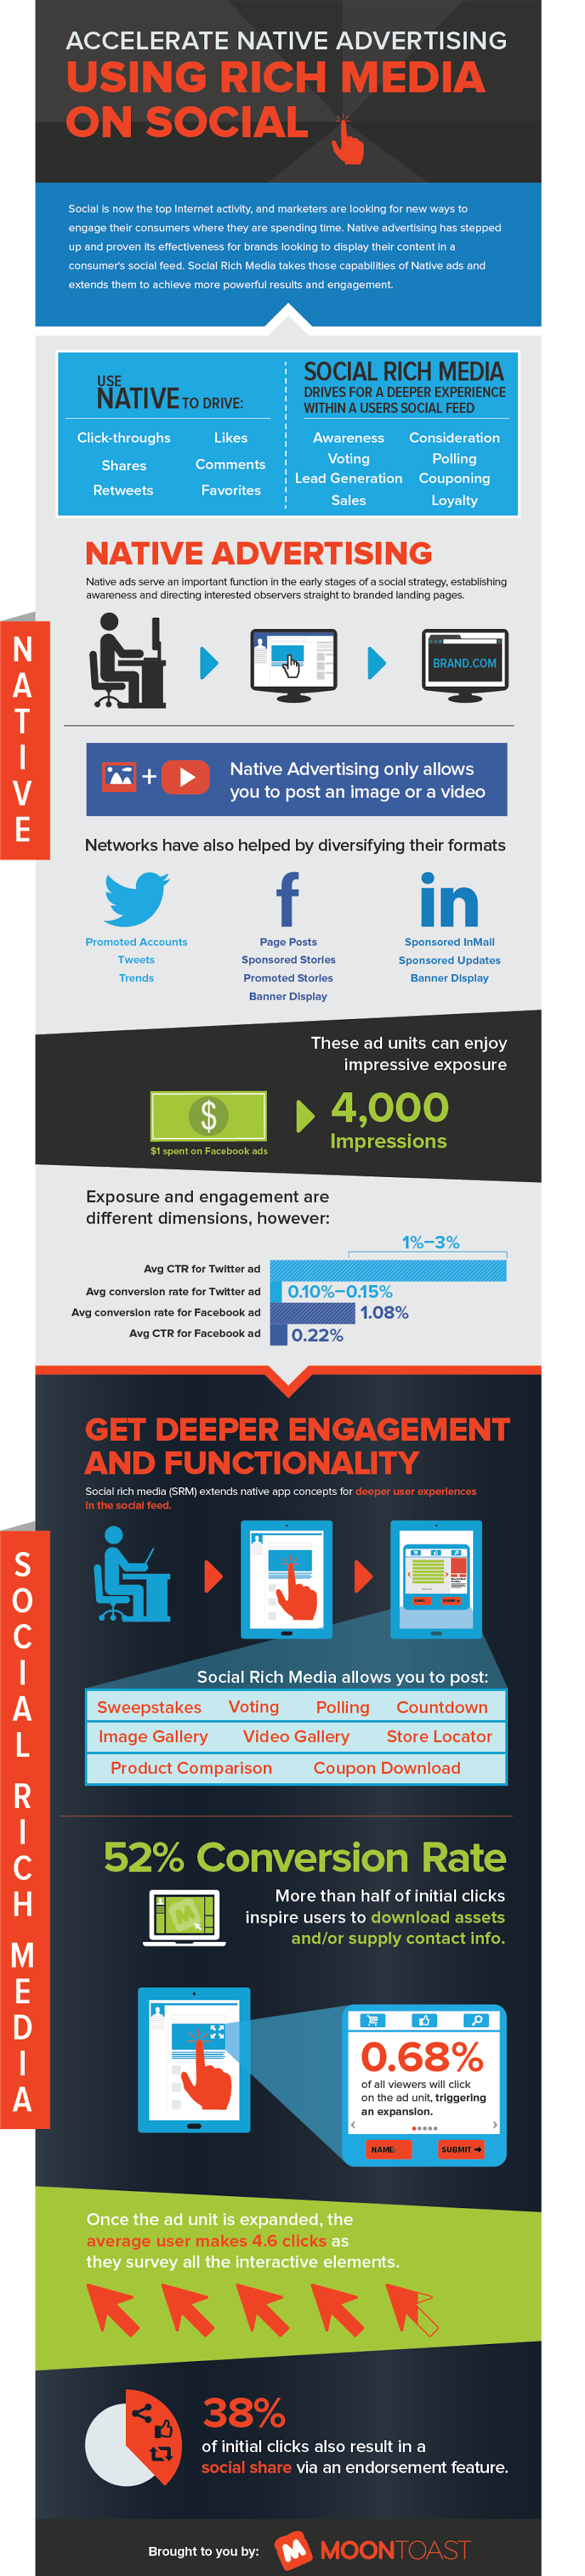 infographic-accelerating-native-advertising-using-rich-media-on-facebook-twitter-linkedin (1)